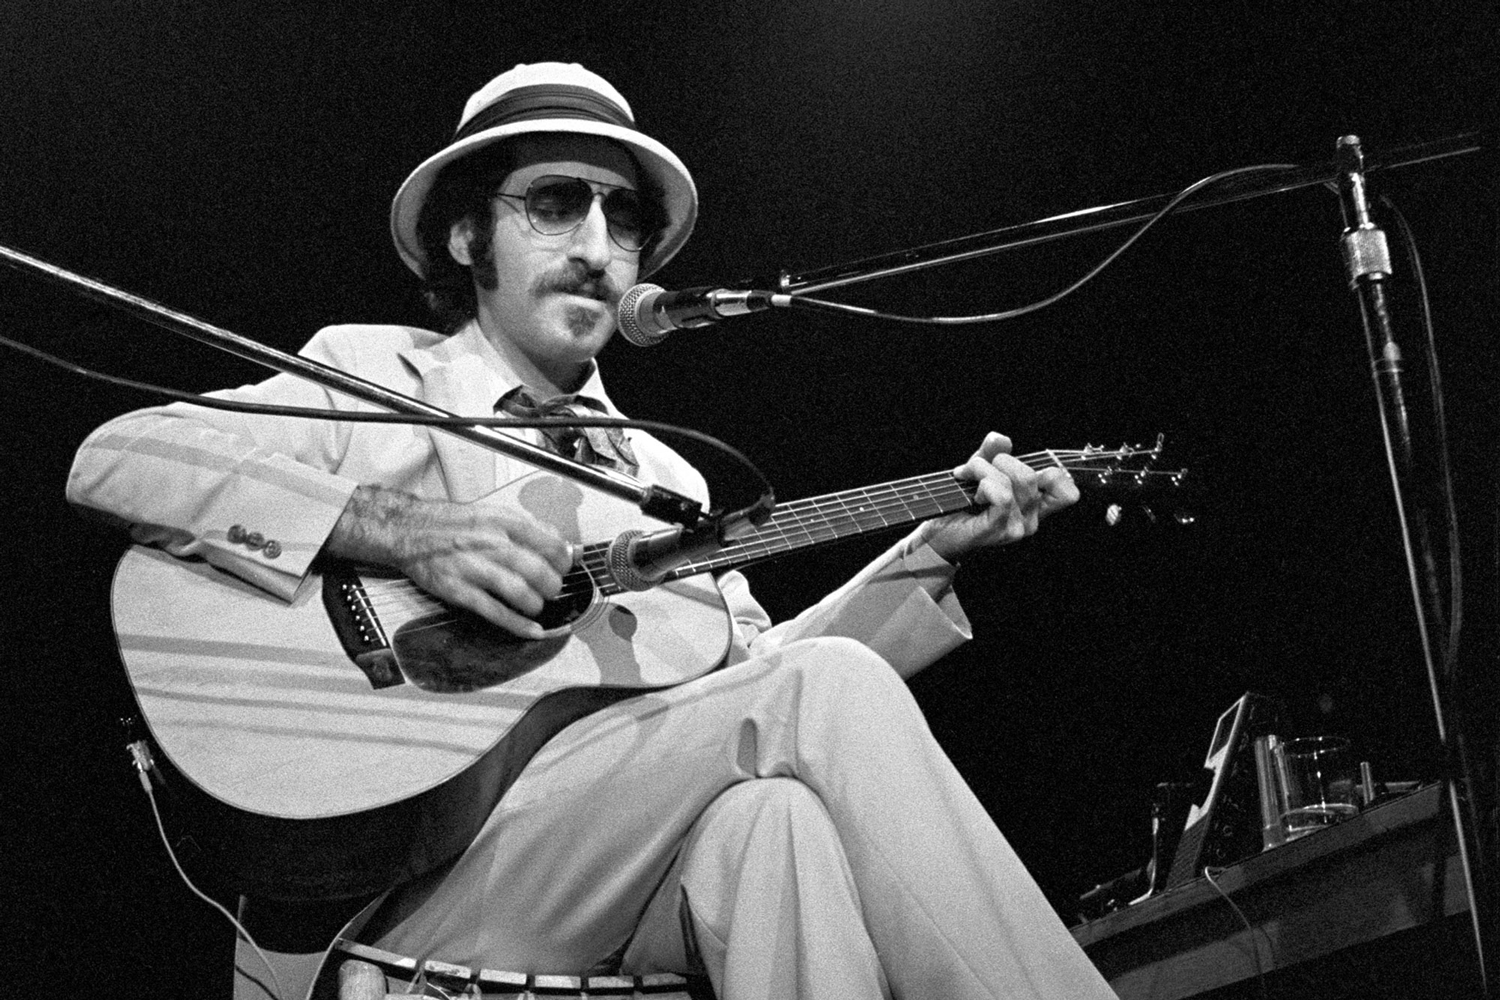 Leon Redbone: Trying (and Failing) to Untangle a Mysterious Hero